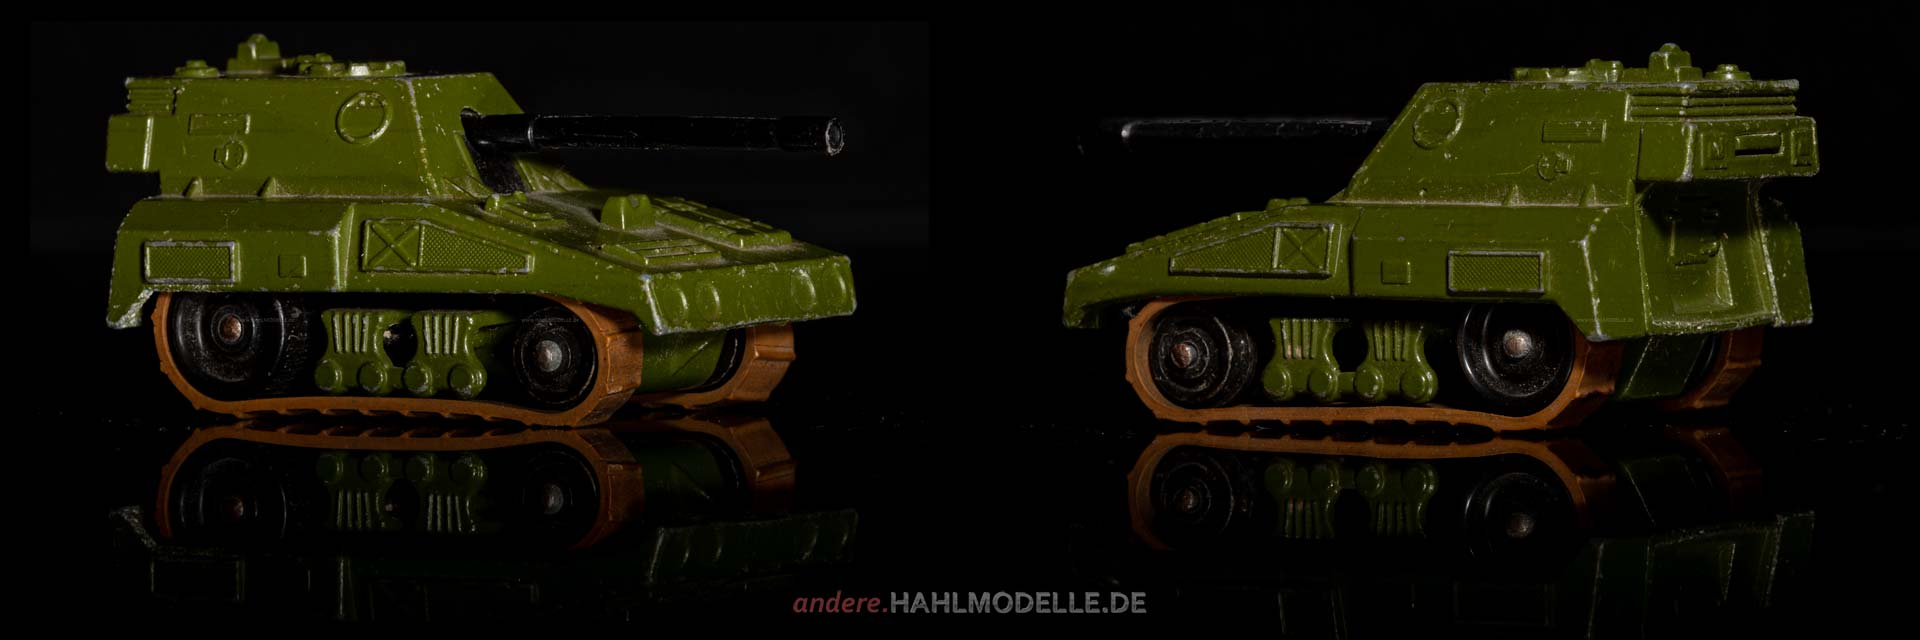 """S.P.Gun (Self Propelled Gun)"" 